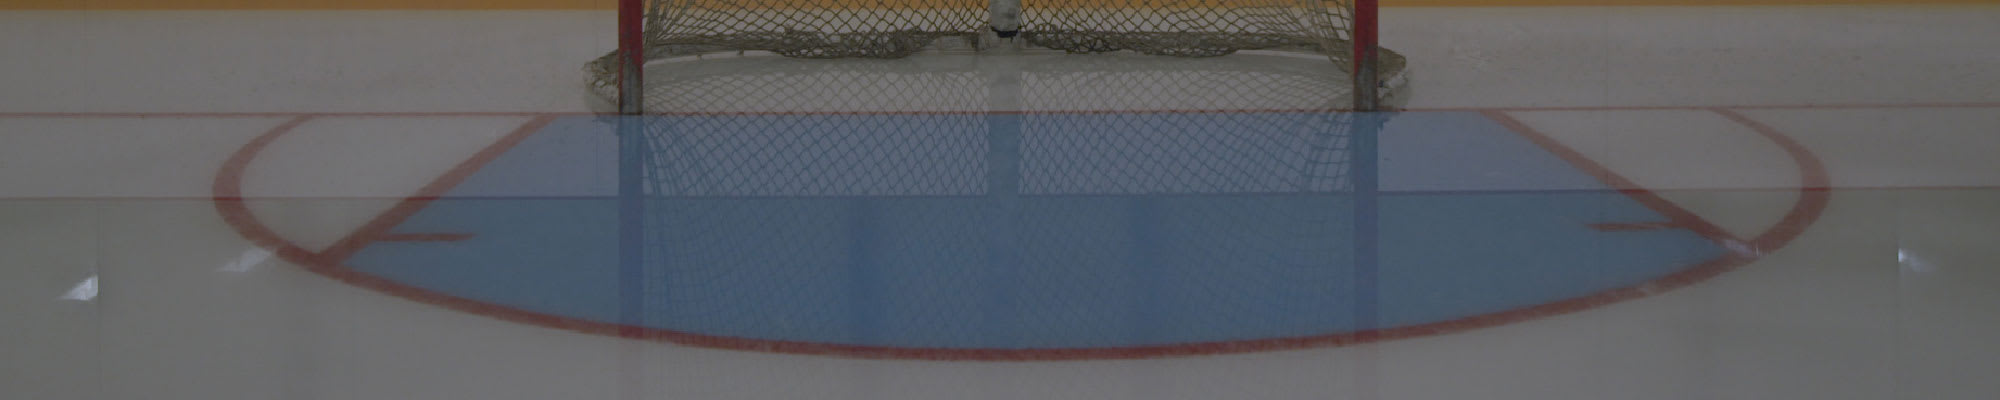 Hockey Crease